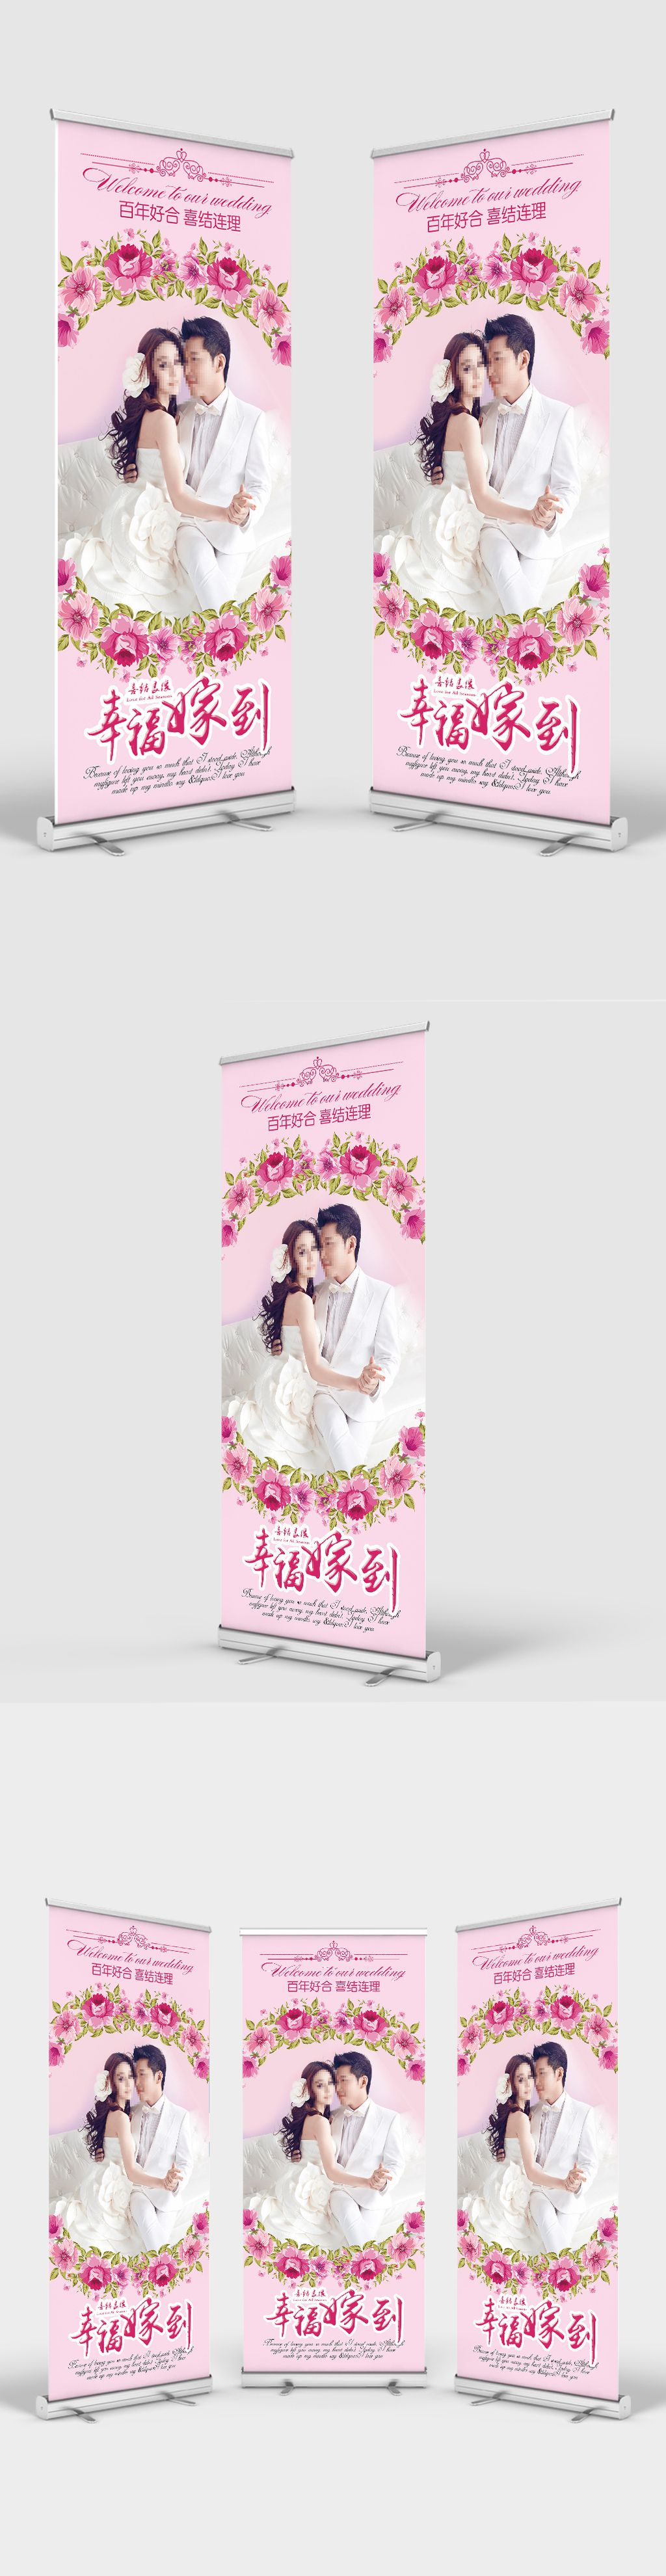 standee-dam-cuoi 30c888piCCrY Dự án thiết kế